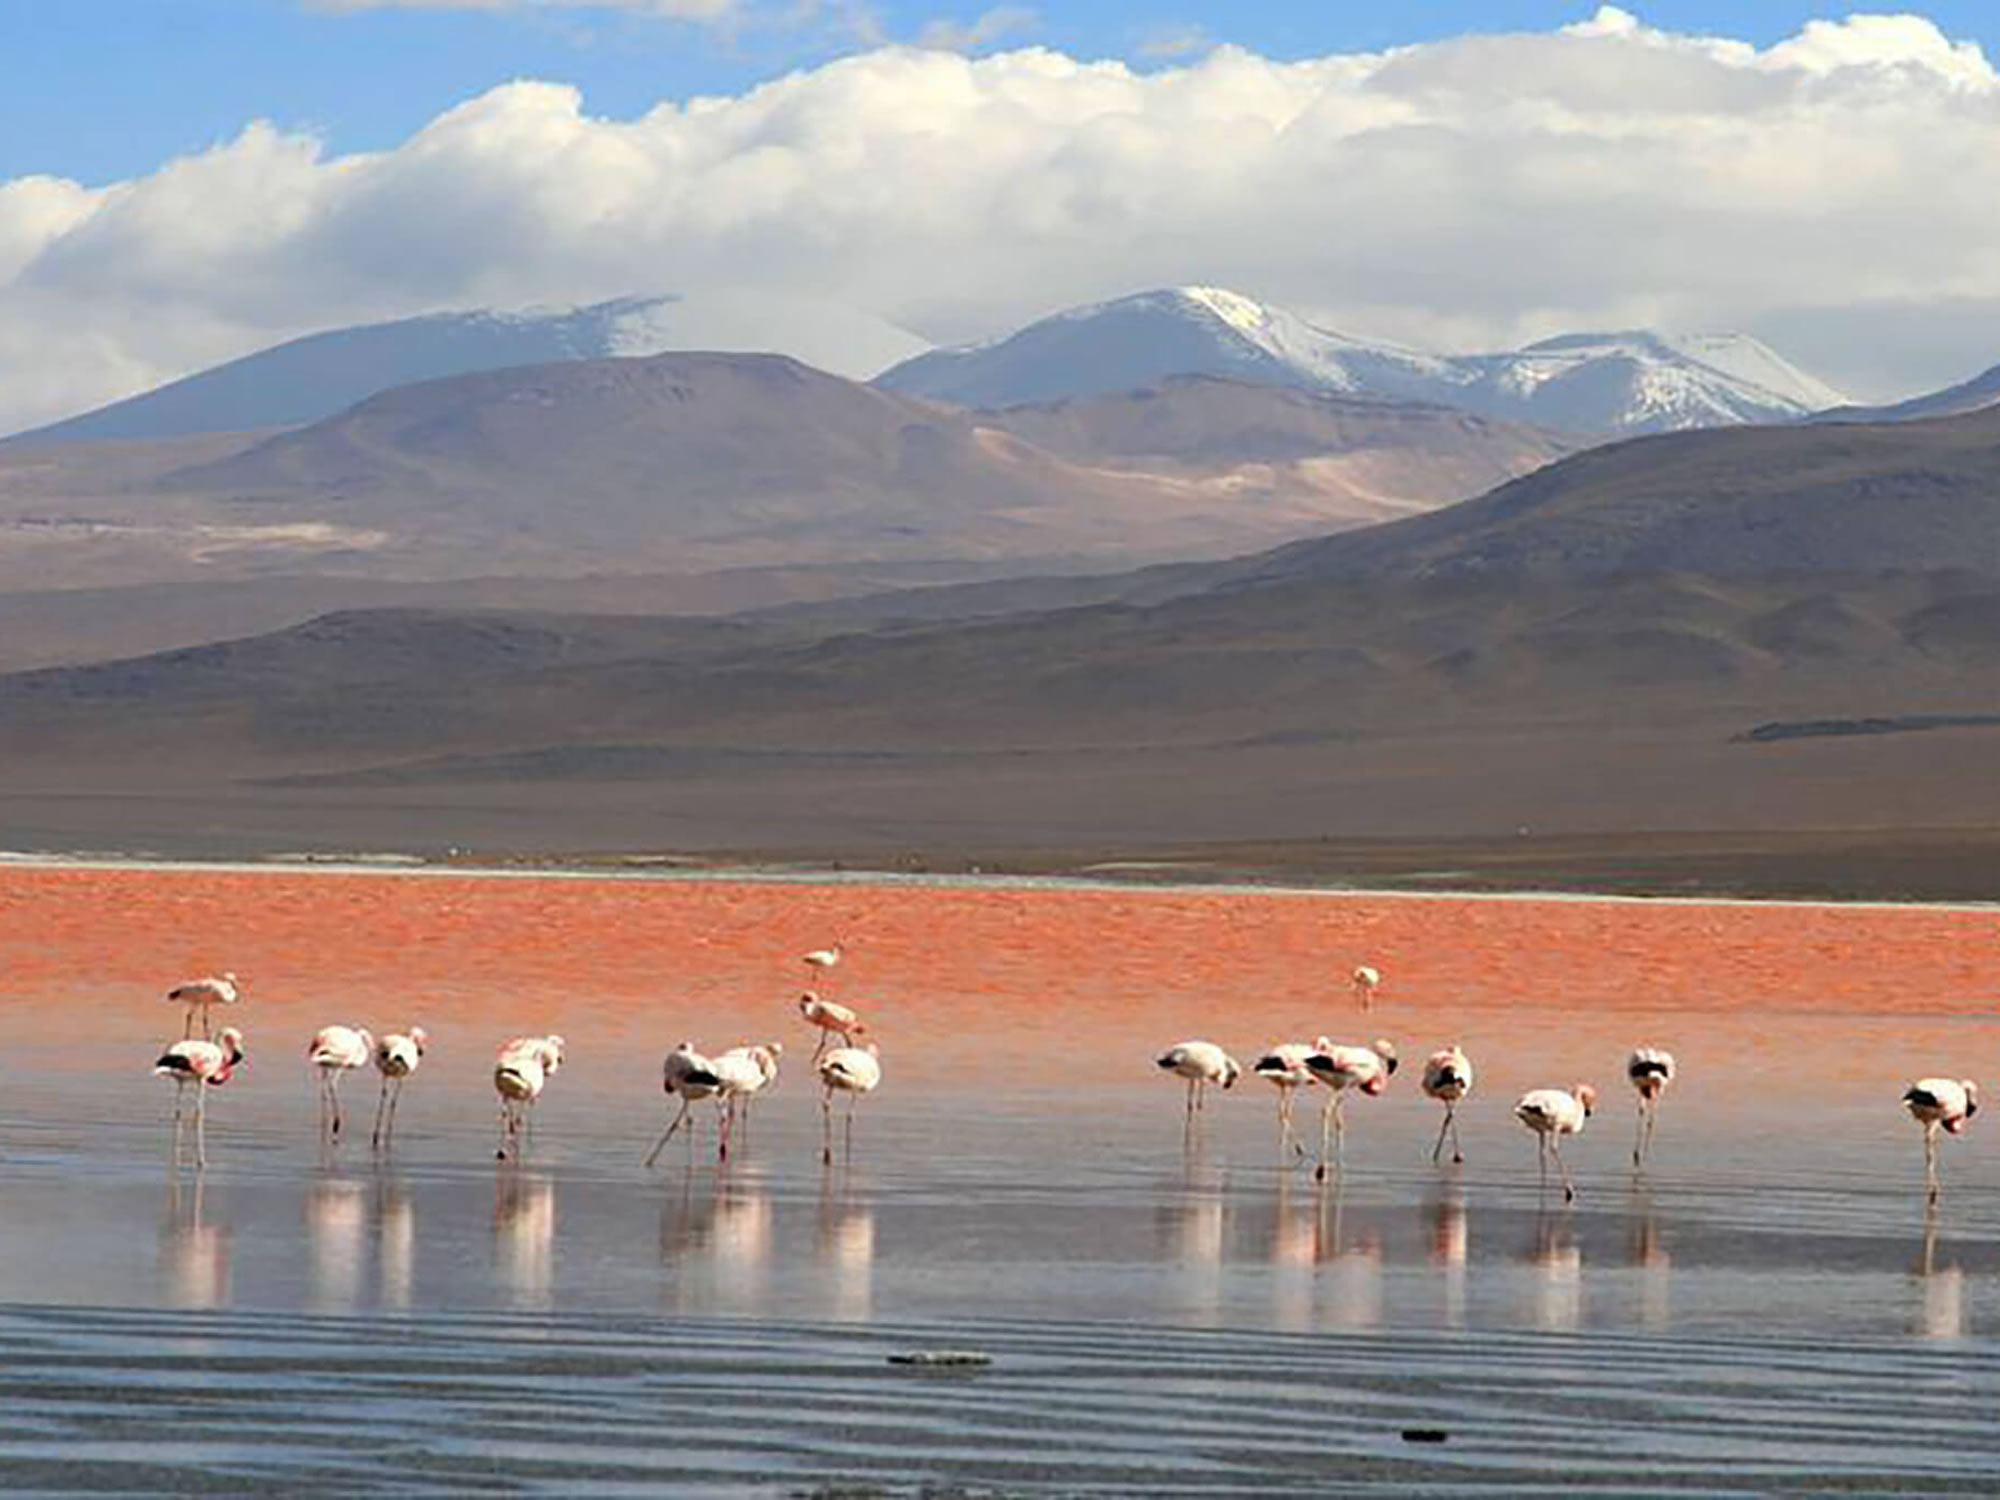 In winter, the mountains around the Red lagoon are coverd by snow